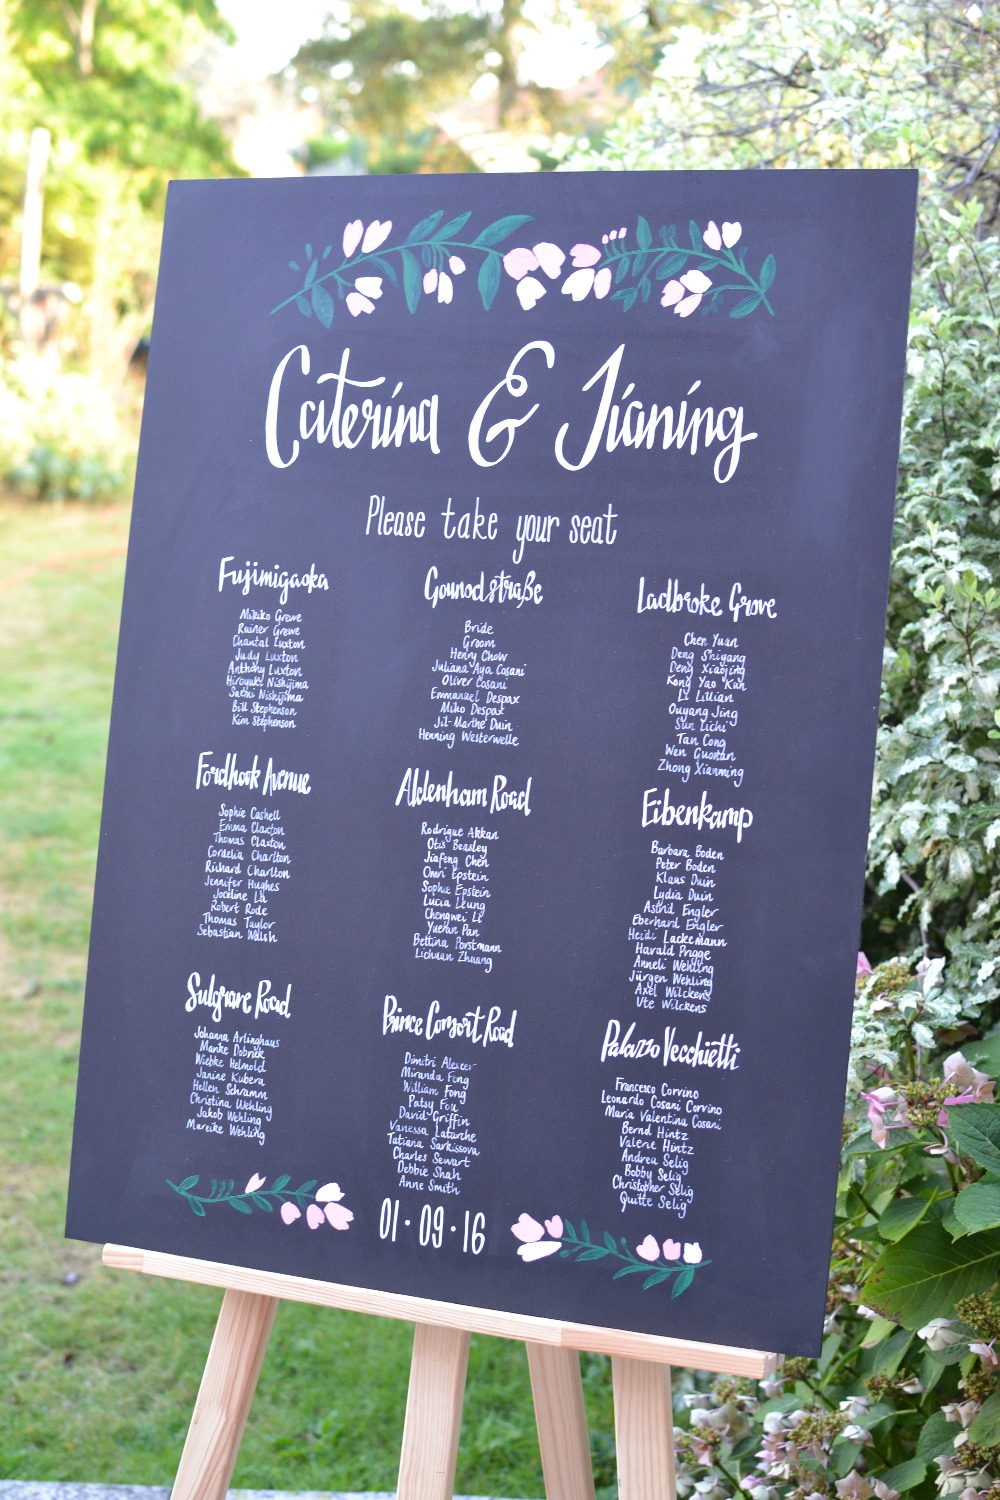 Caterina & Jianing table plan - August 2016 (19)_edited